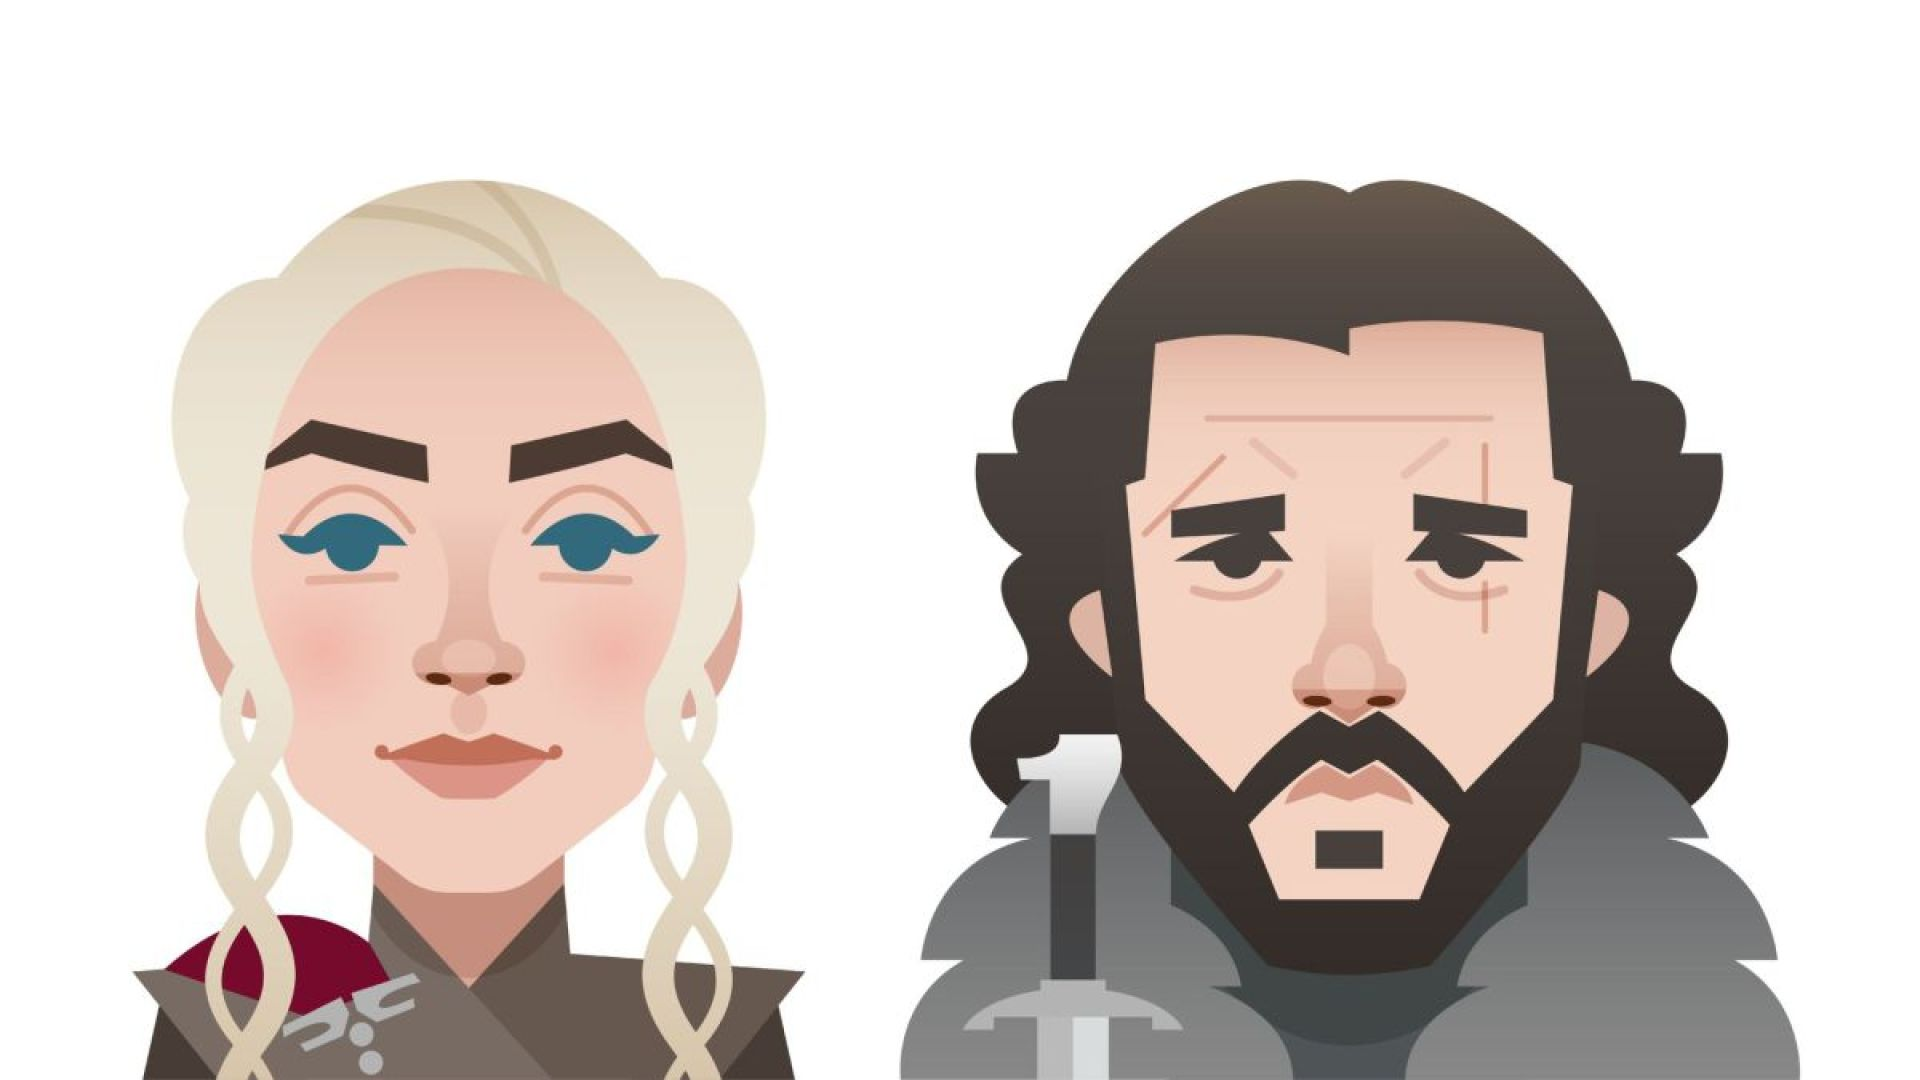 Emojis are coming with these Game of Thrones hashtags